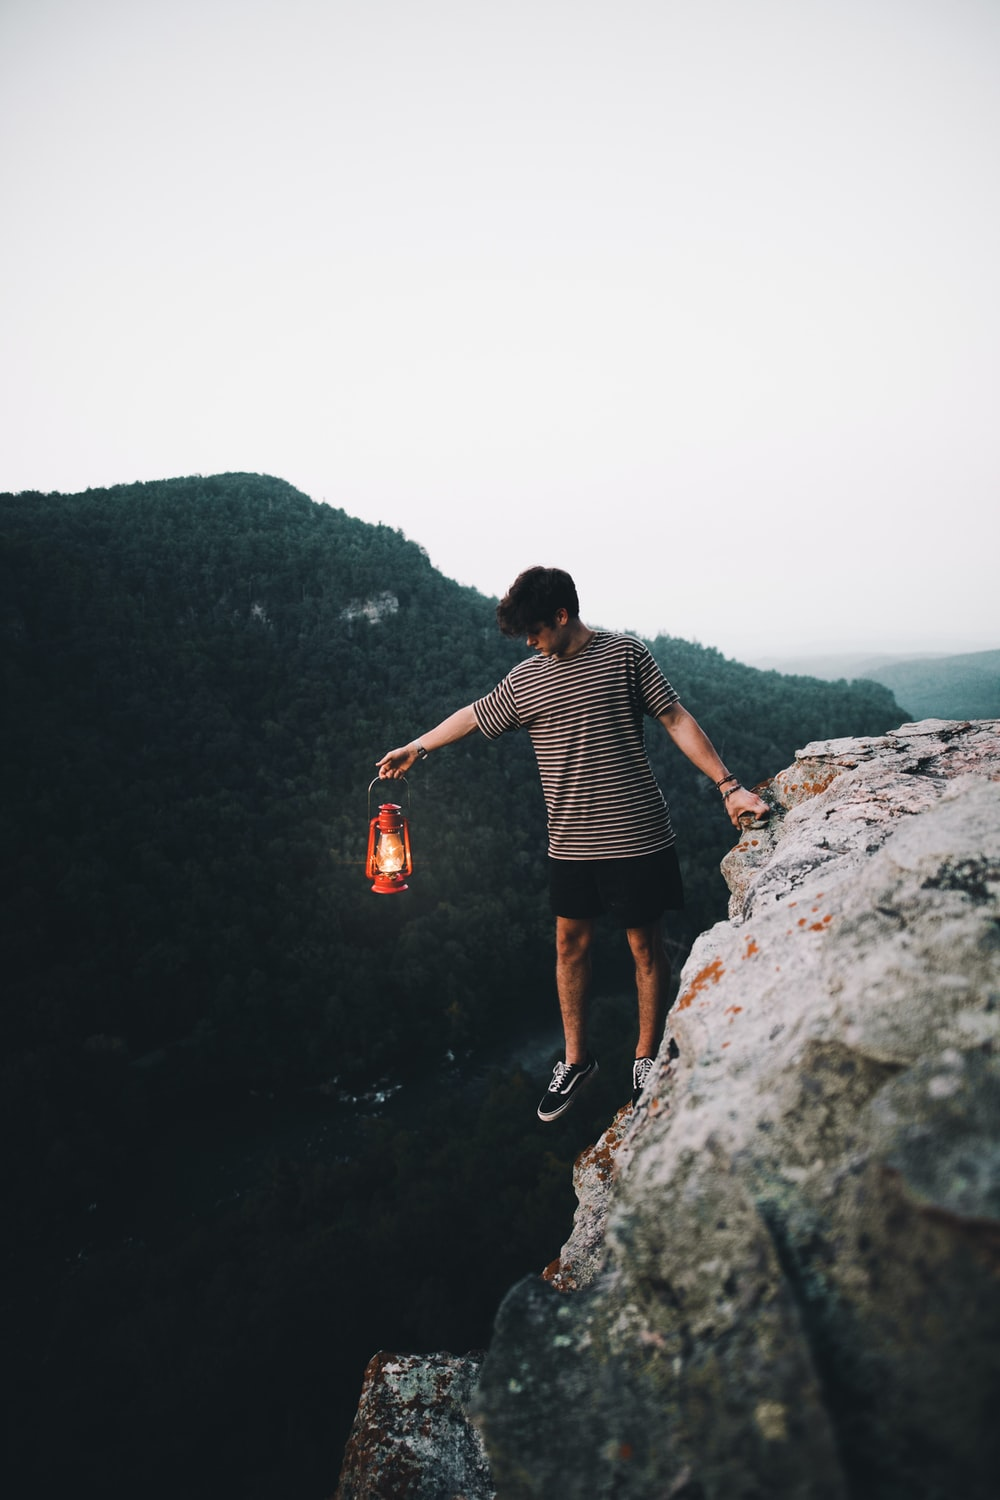 person holding lantern on cliff